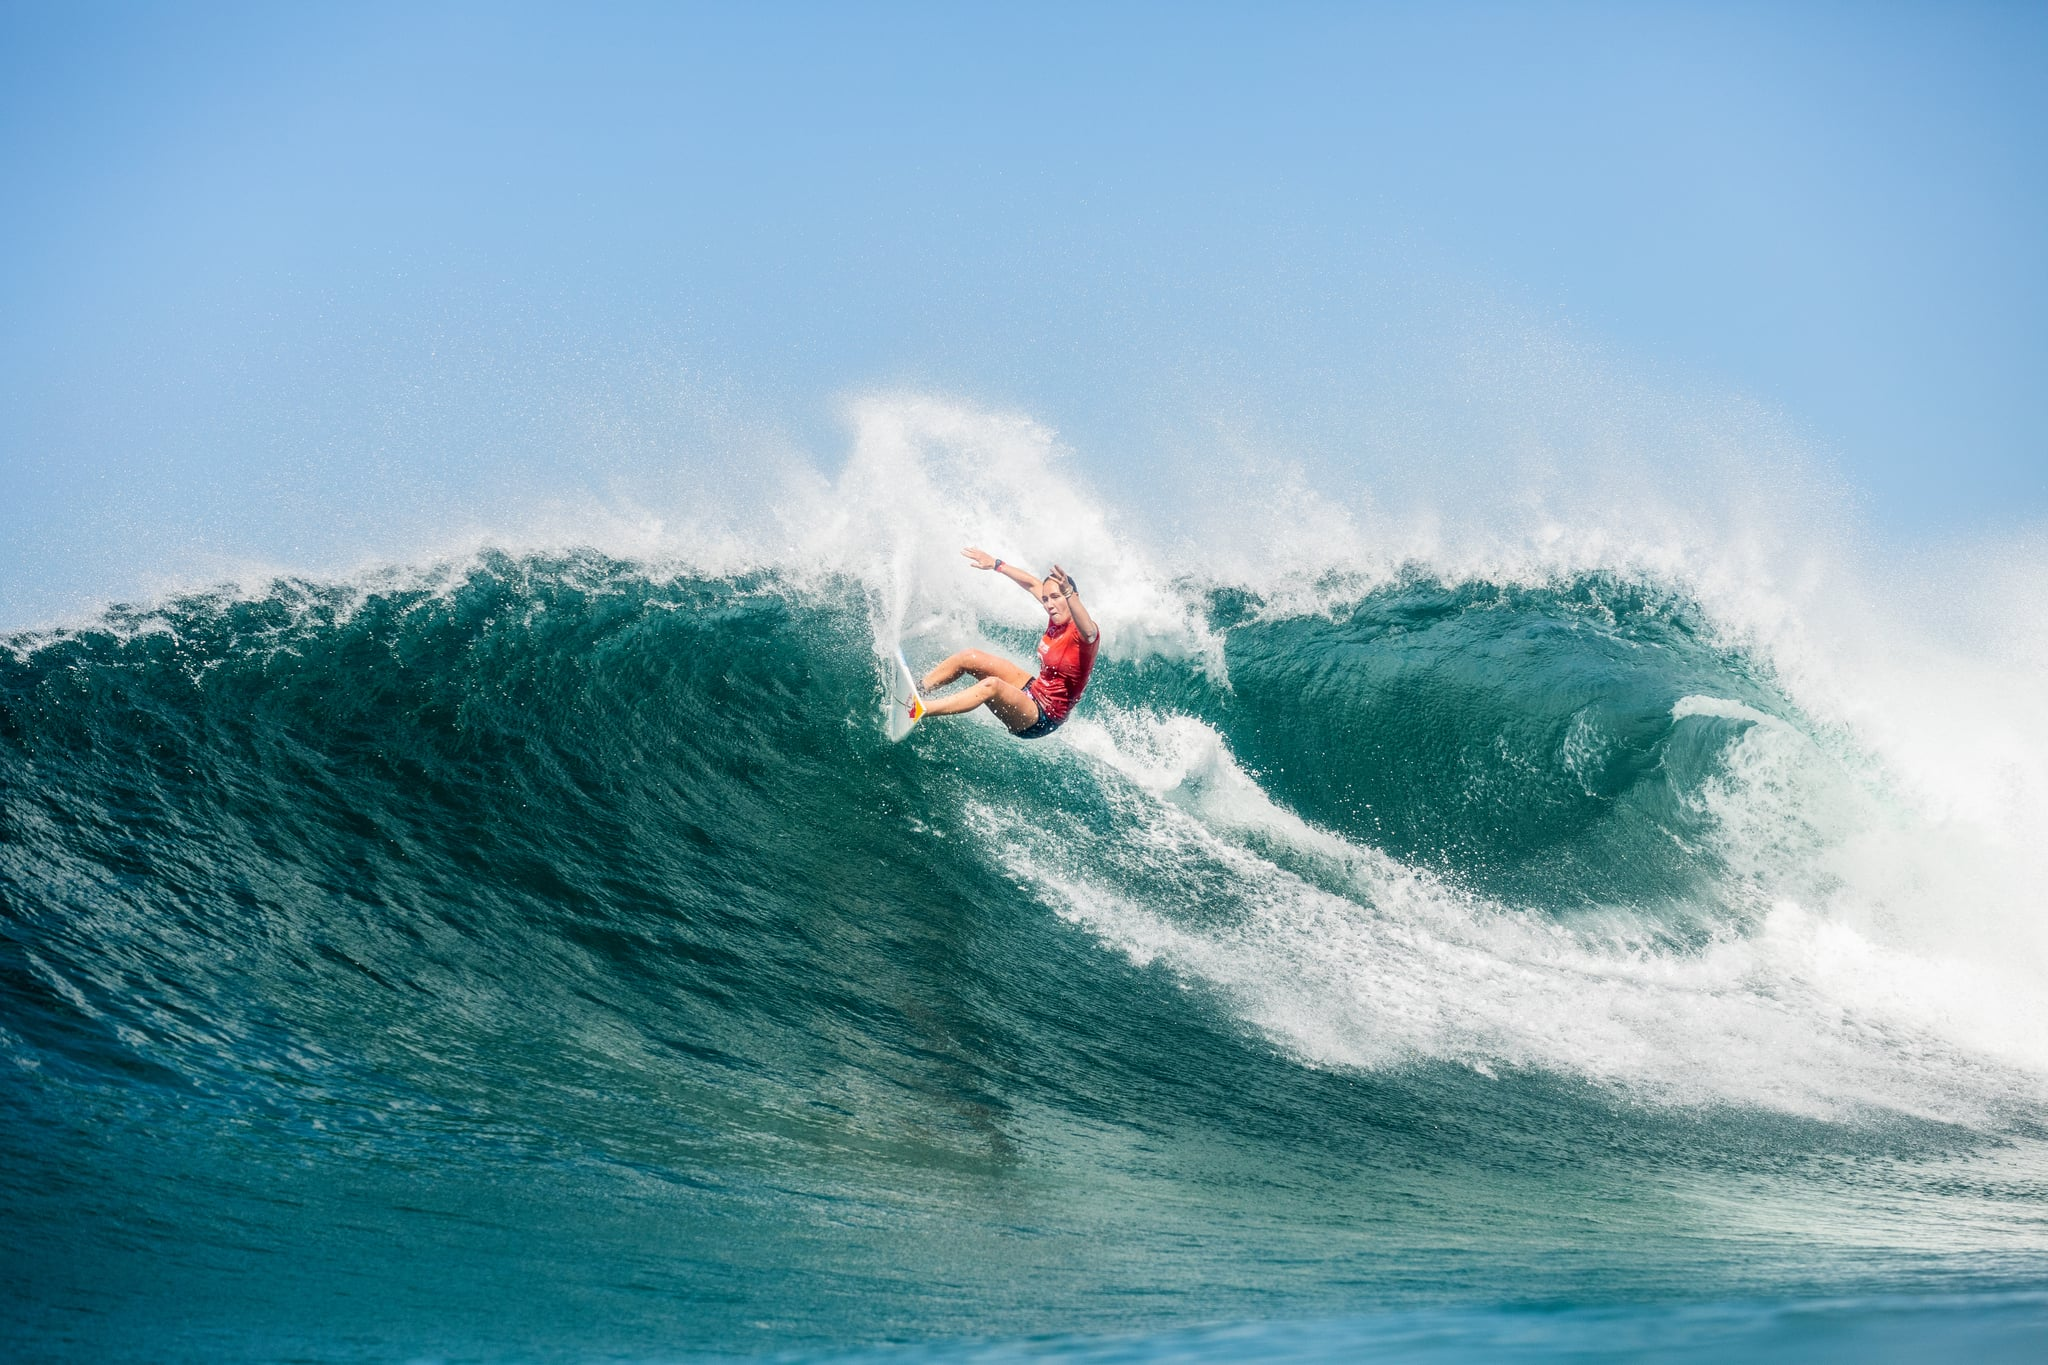 NEWCASTLE, AUS - APRIL 10: Four-time WSL Champion Carissa Moore of Hawaii surfing in Heat 3 of the Semifinals of the Rip Curl Newcastle Cup presented by Corona on April 10, 2021 in Newcastle, Australia. (Photo by Cait Miers/World Surf League via Getty Images)